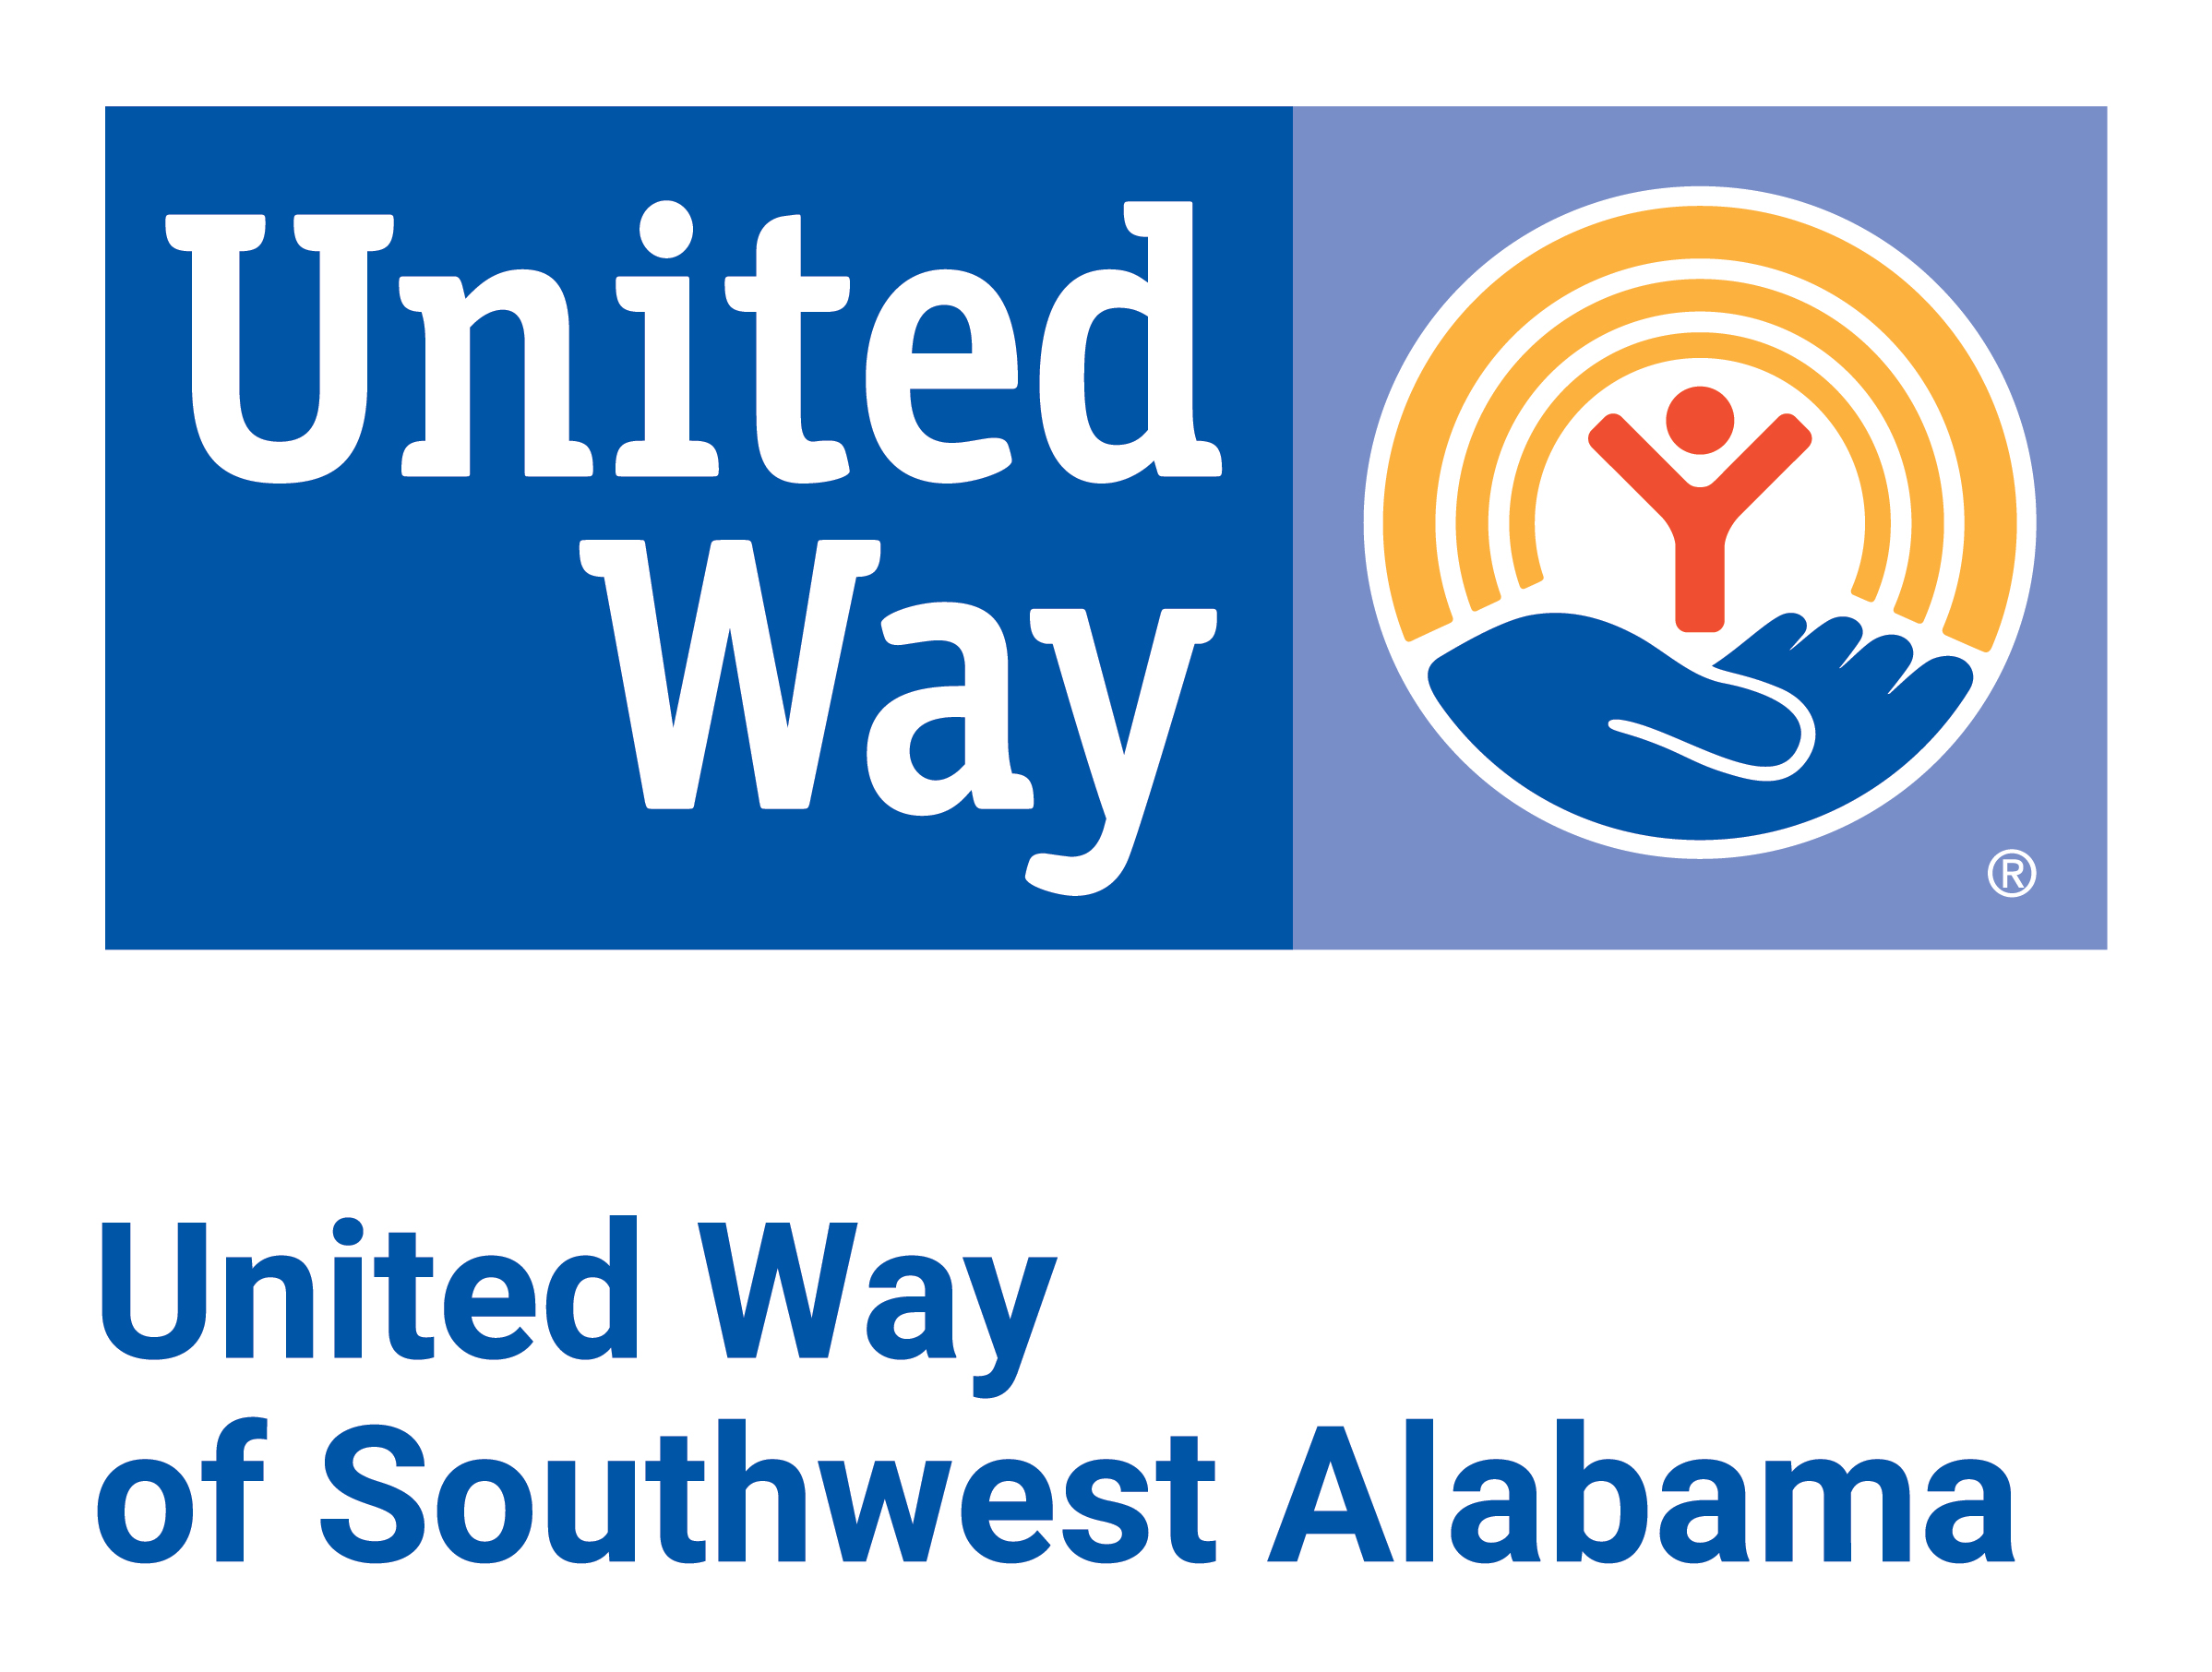 United Way of Southwest Alabama color logo